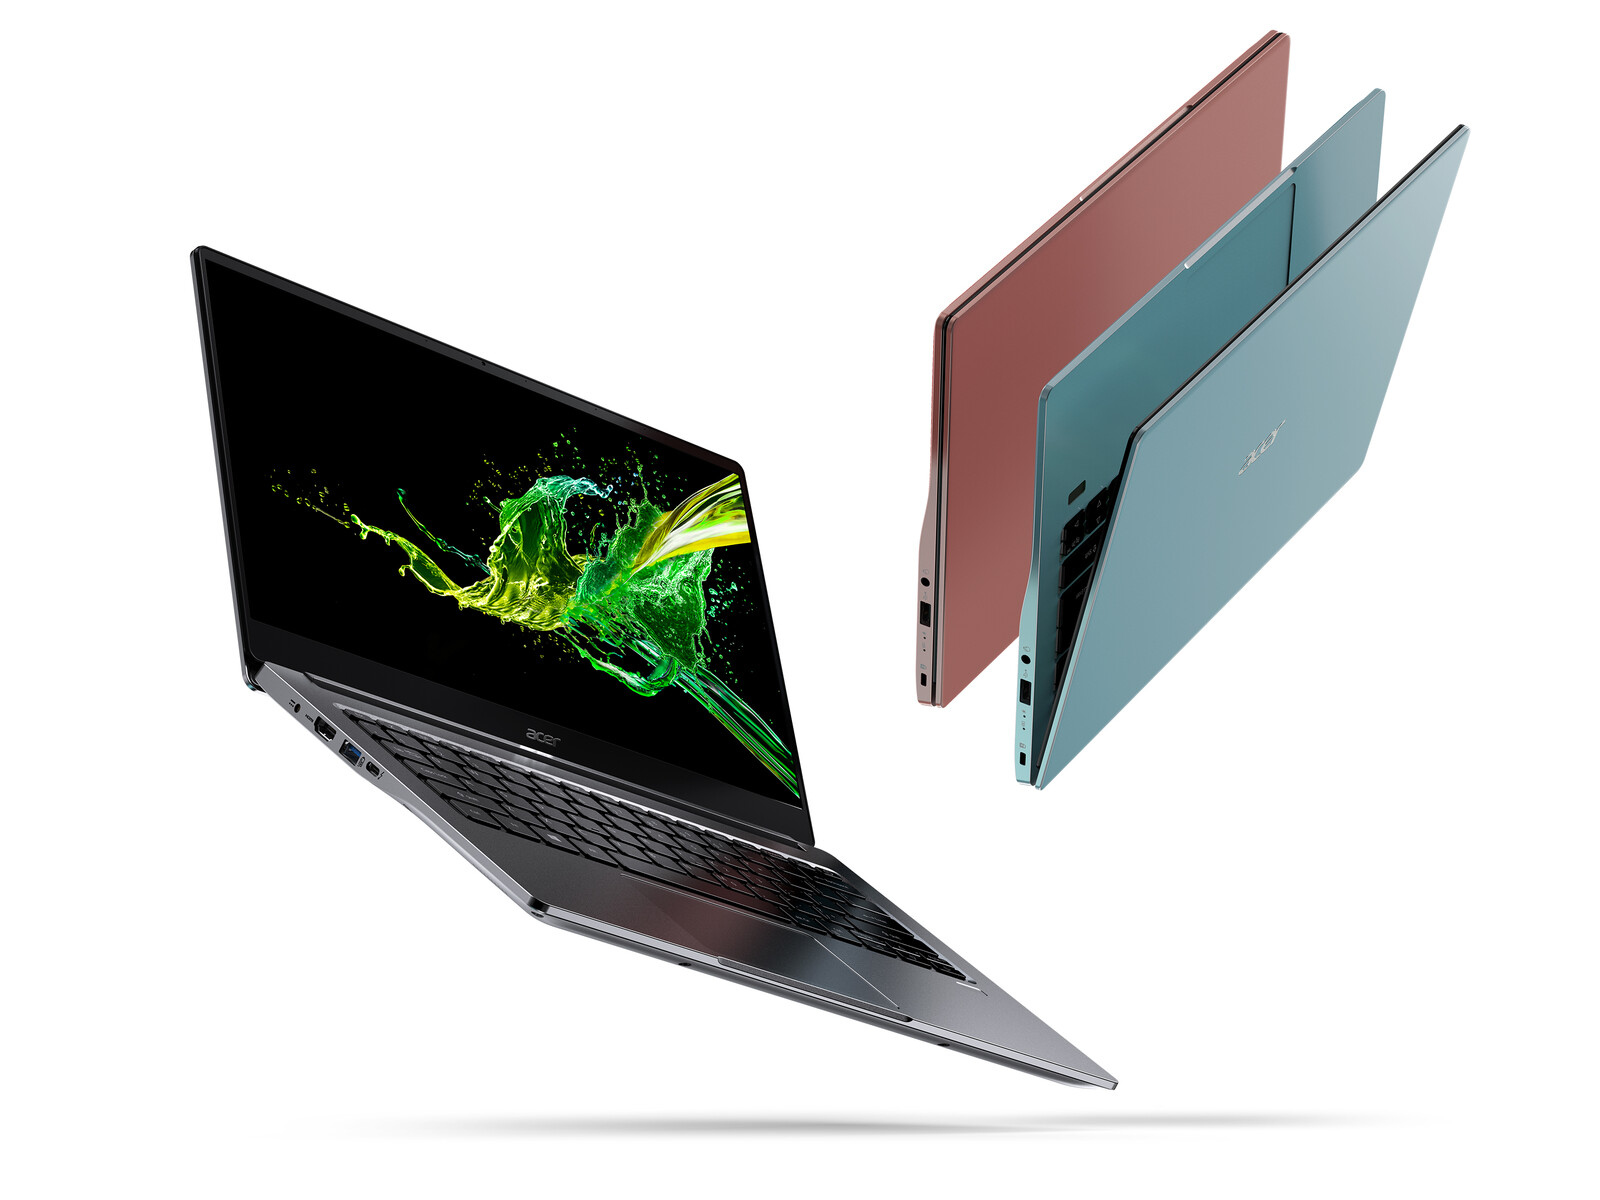 Acer updates Swift 3 and Swift 5 notebooks with 10th Gen Intel Ice Lake CPUs